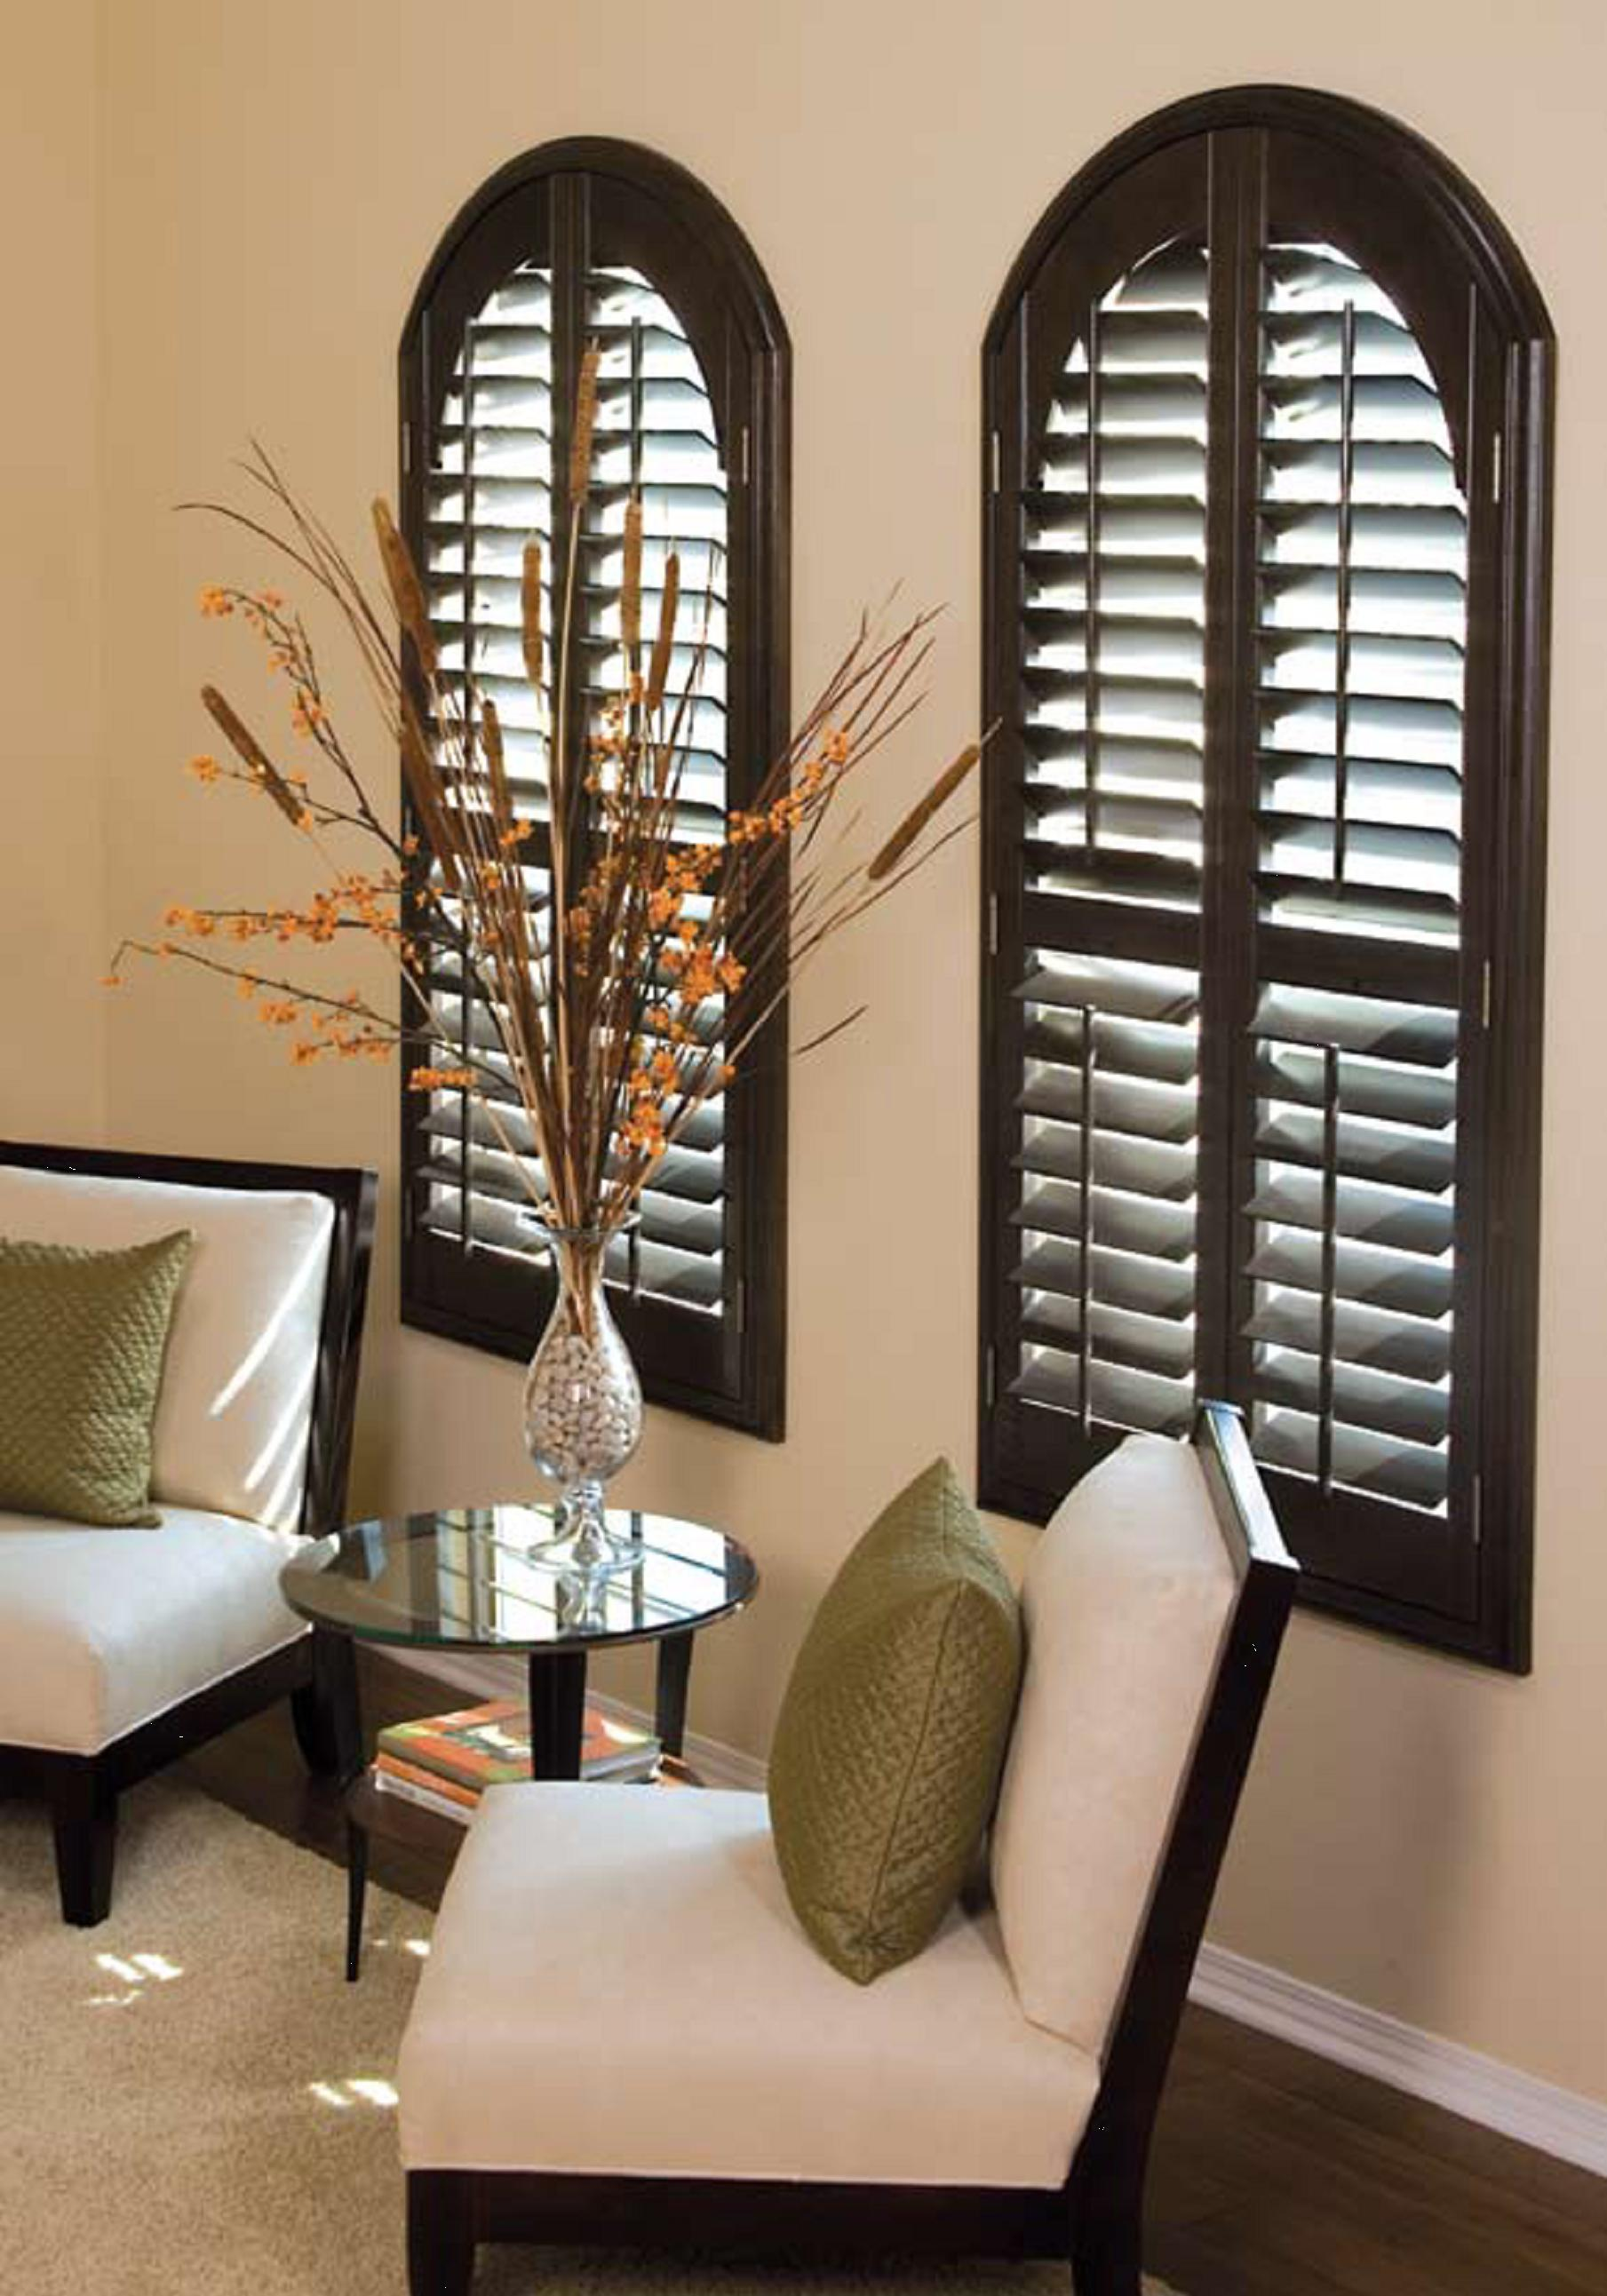 Gator Blinds & Shutters Apopka Window Blinds Orlando Florida !